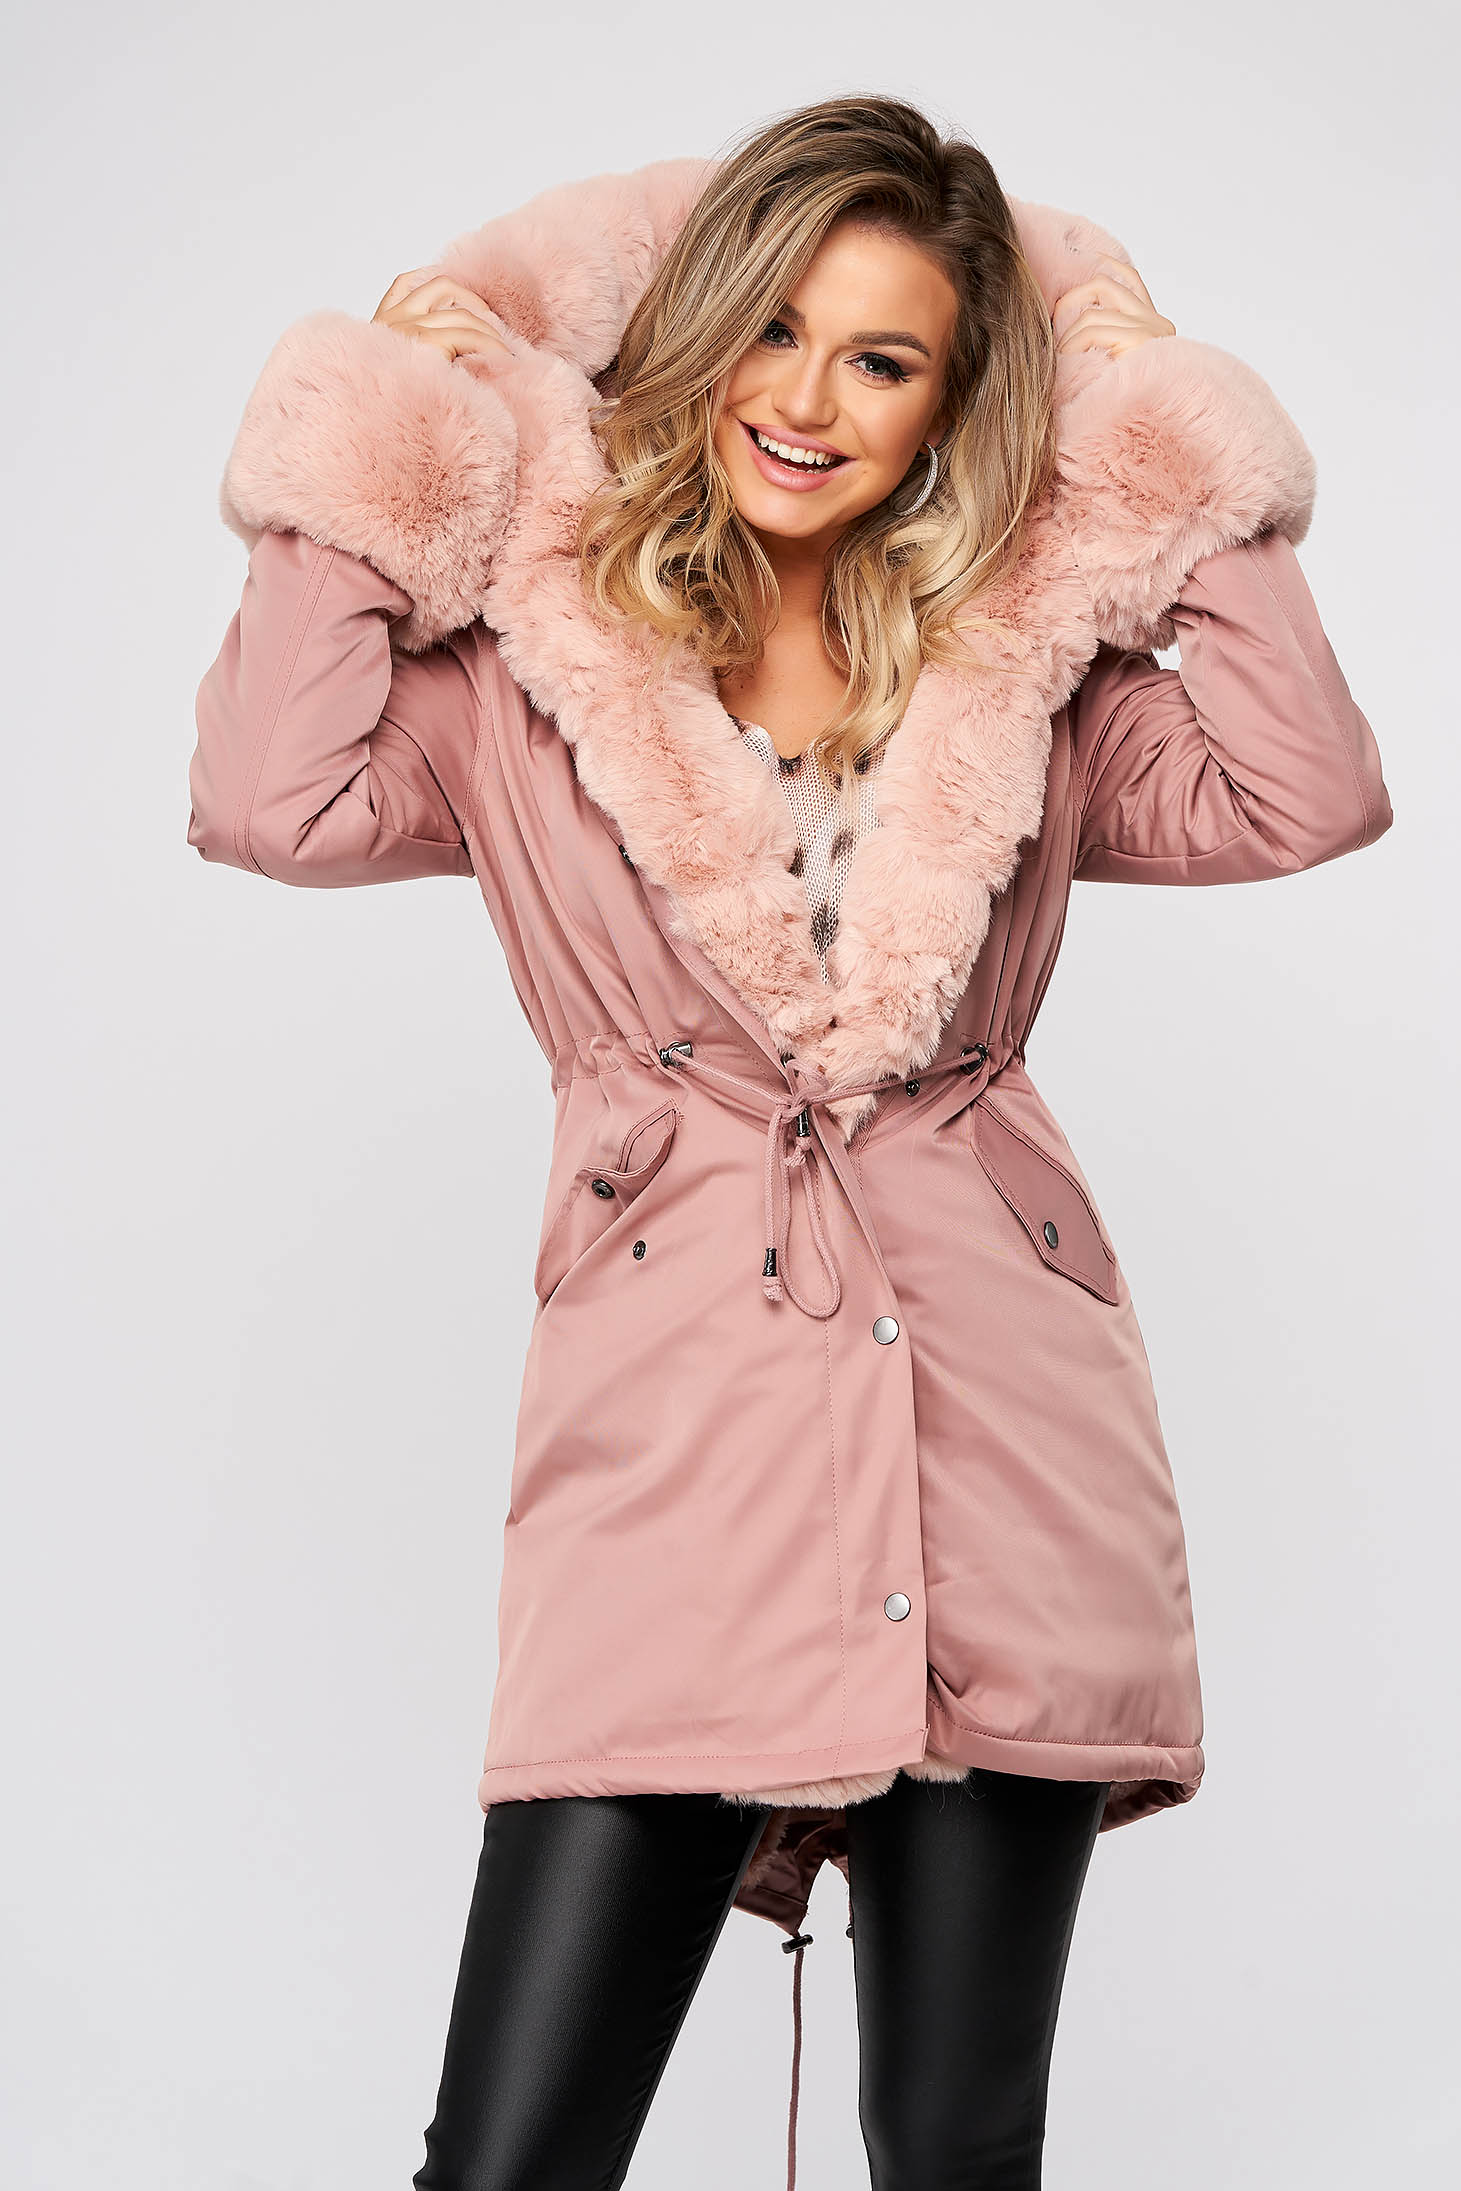 Pink jacket casual from thick fabric with faux fur lining with pockets